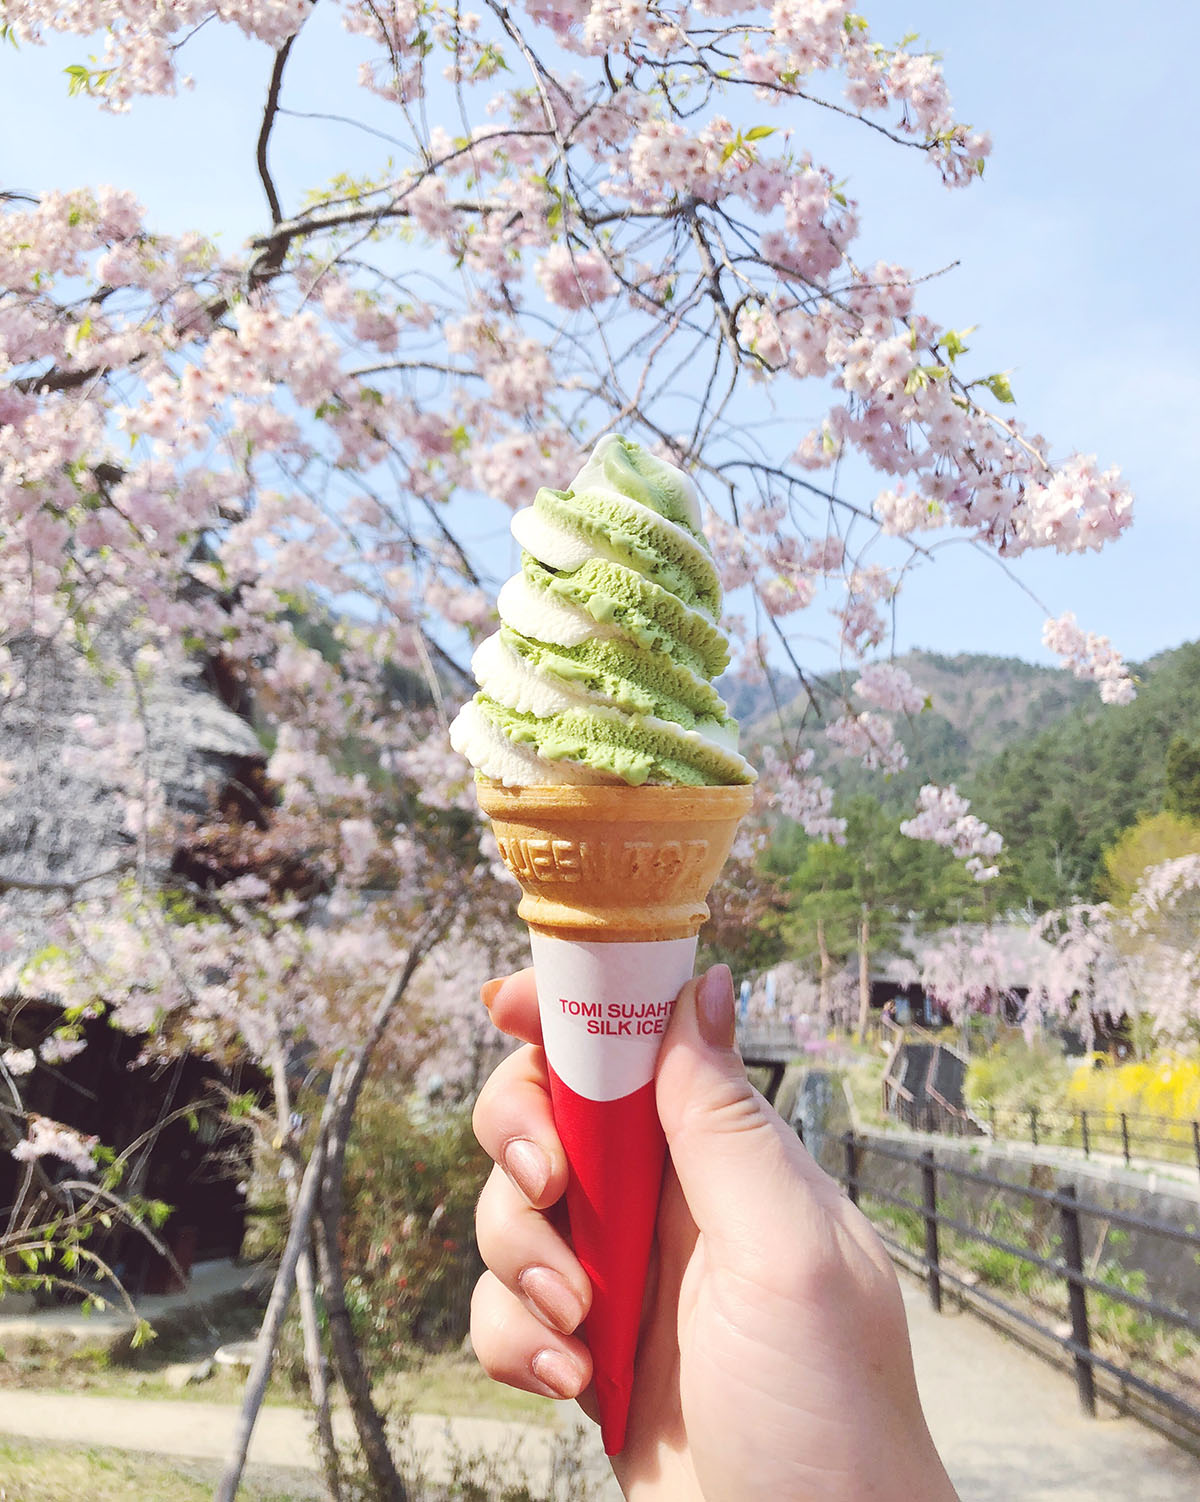 Jessica Sturdy Japan Travel Guide -- Matcha Soft Serve Ice Cream in front of Cherry Blossom Trees with Blue Skies near Mt Fuji